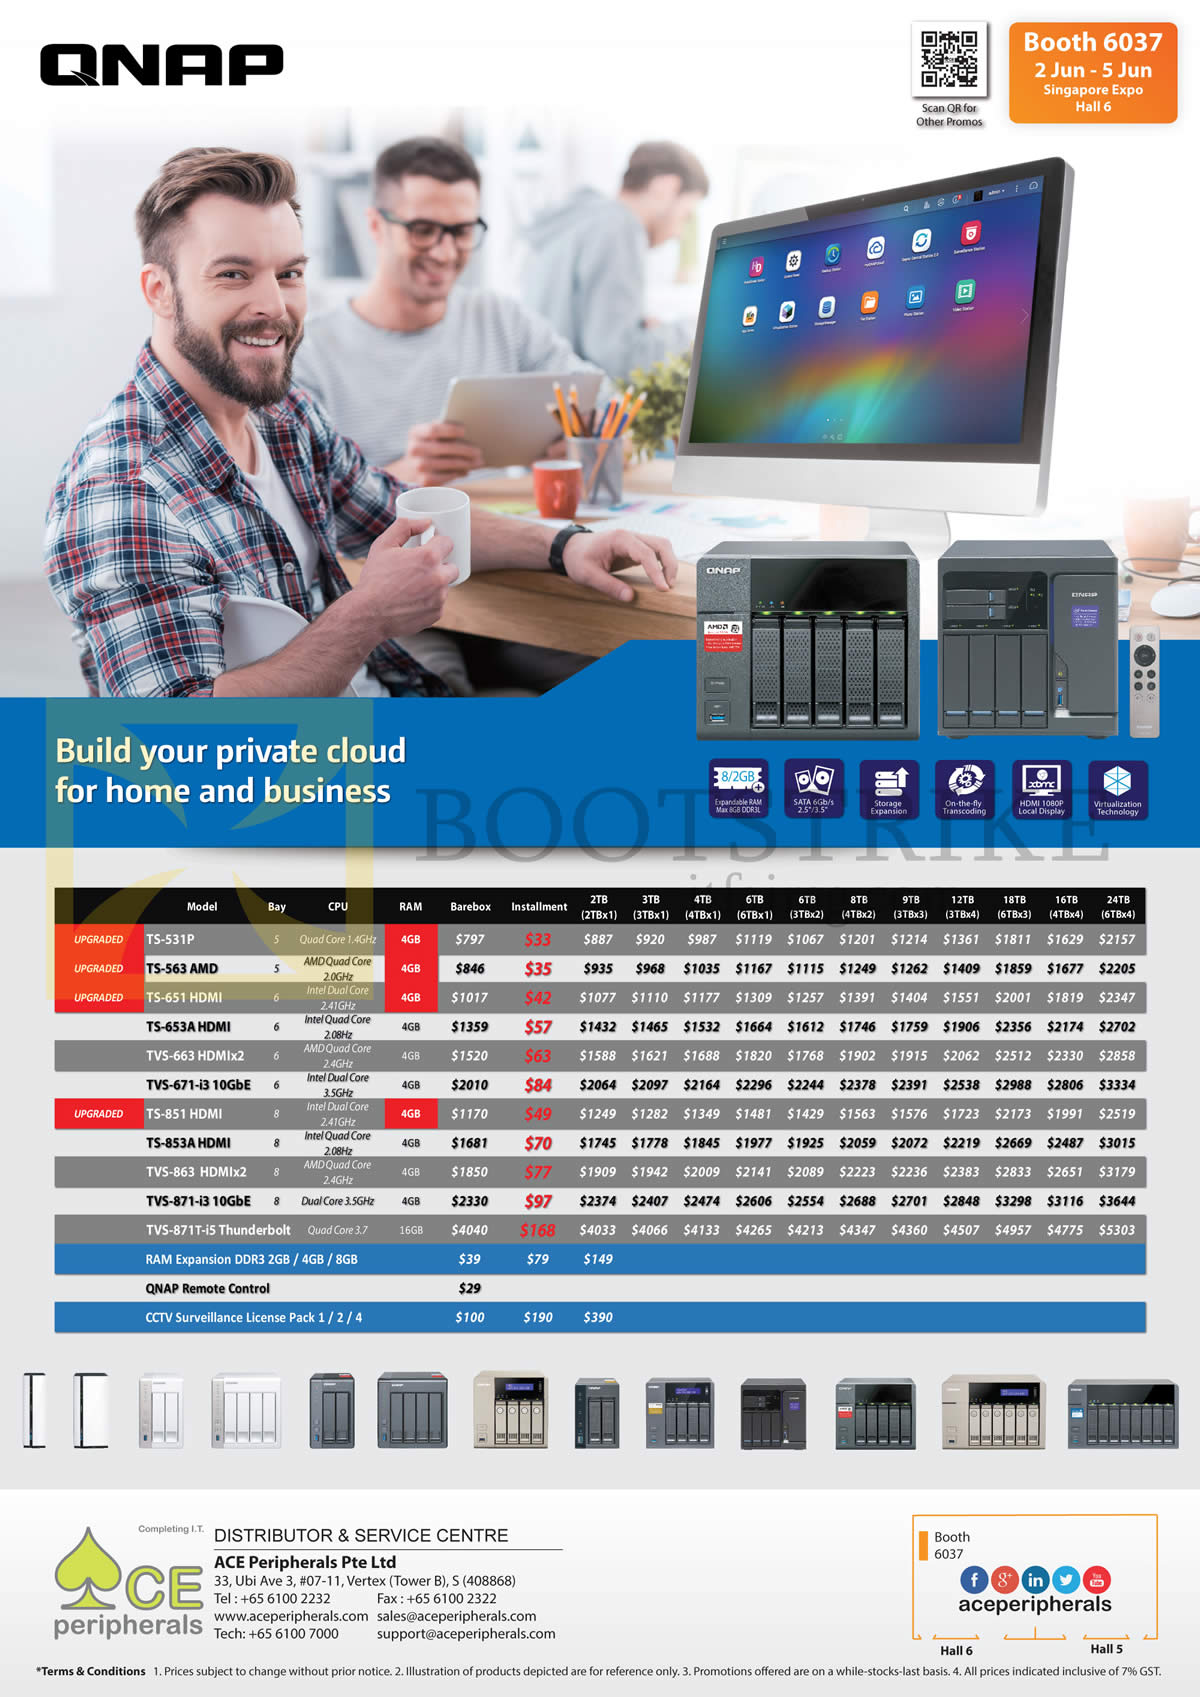 PC SHOW 2016 price list image brochure of ACE Peripherals Private Cloud QNAP TS-531P, 563 AMD, 651 HDMI, 653A HDMI, TVS 663 HDMIx2, 671-i3 10GbE, 851, 853A, 863, 871-i3, 871T-i5 Thunderbolt